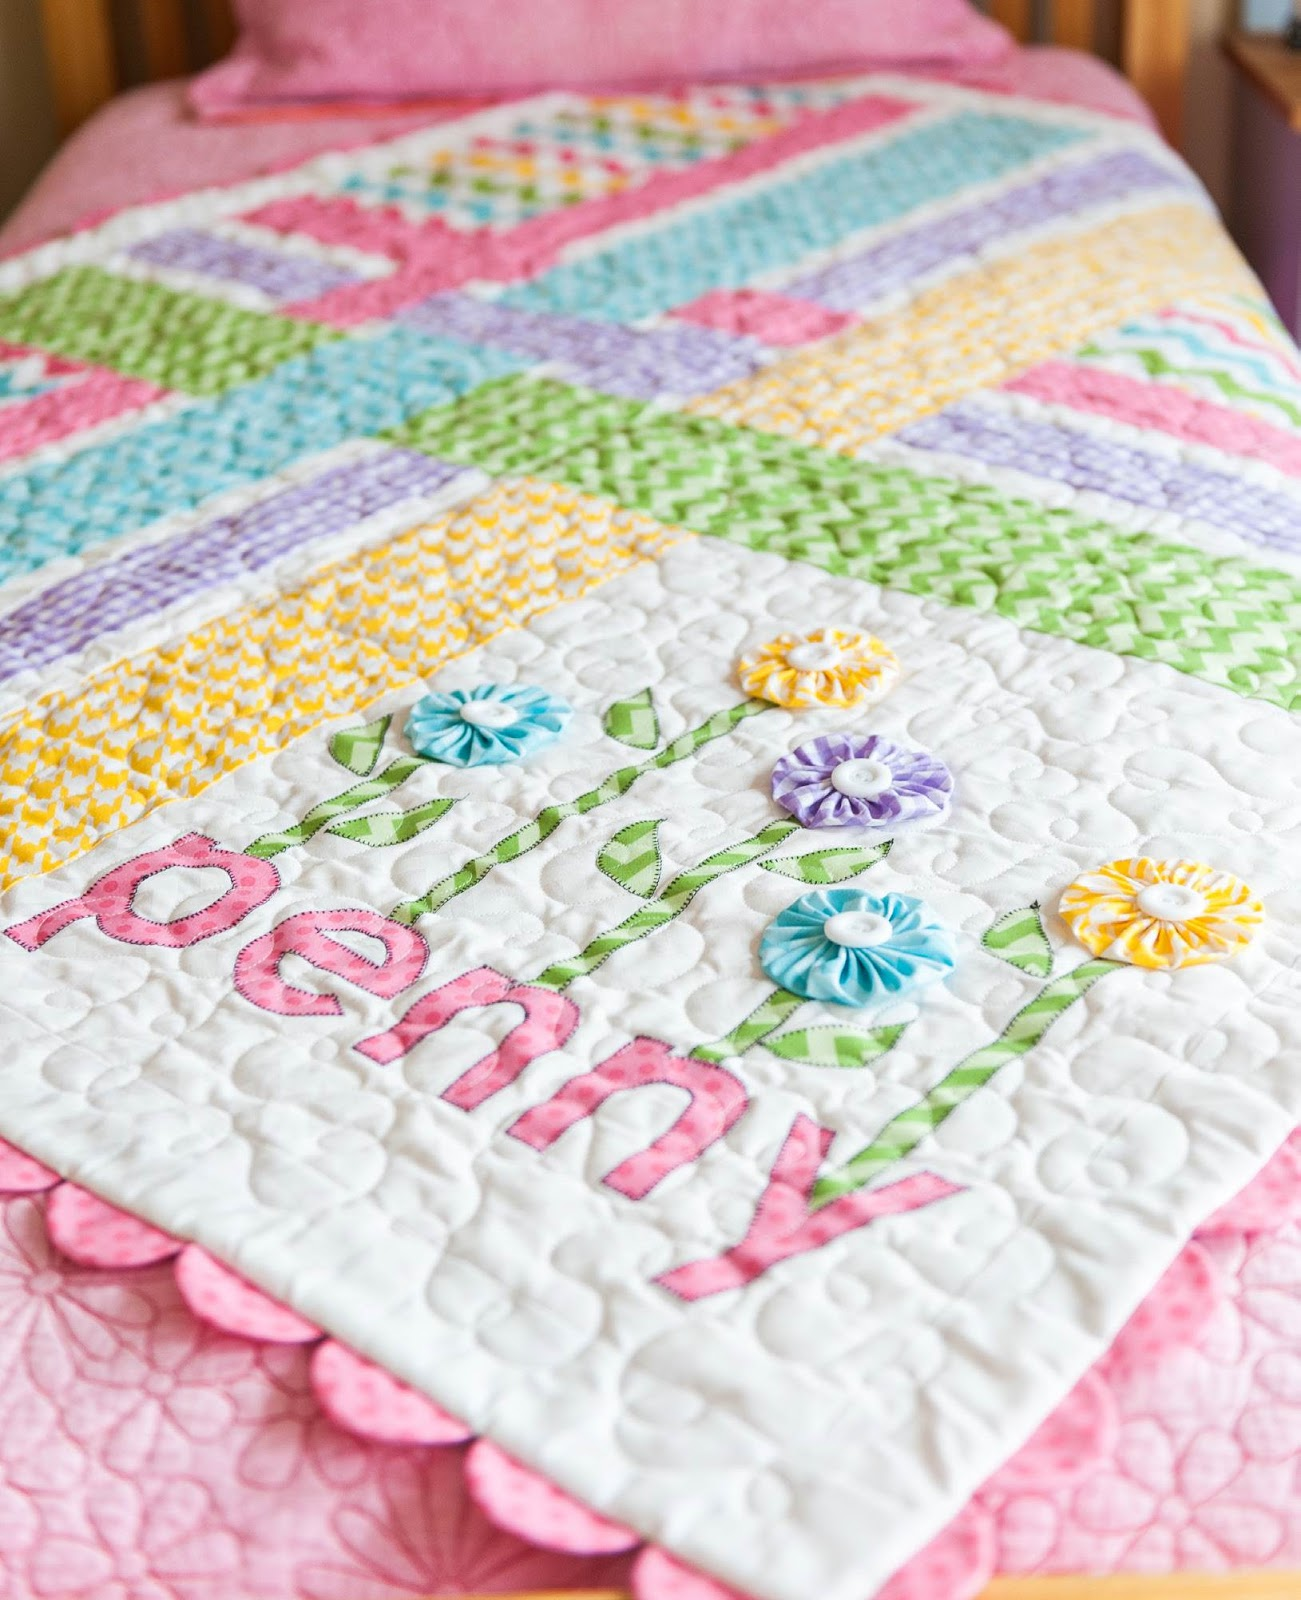 Free baby bed quilt patterns - Free Pattern Day Baby Quilts Part 2